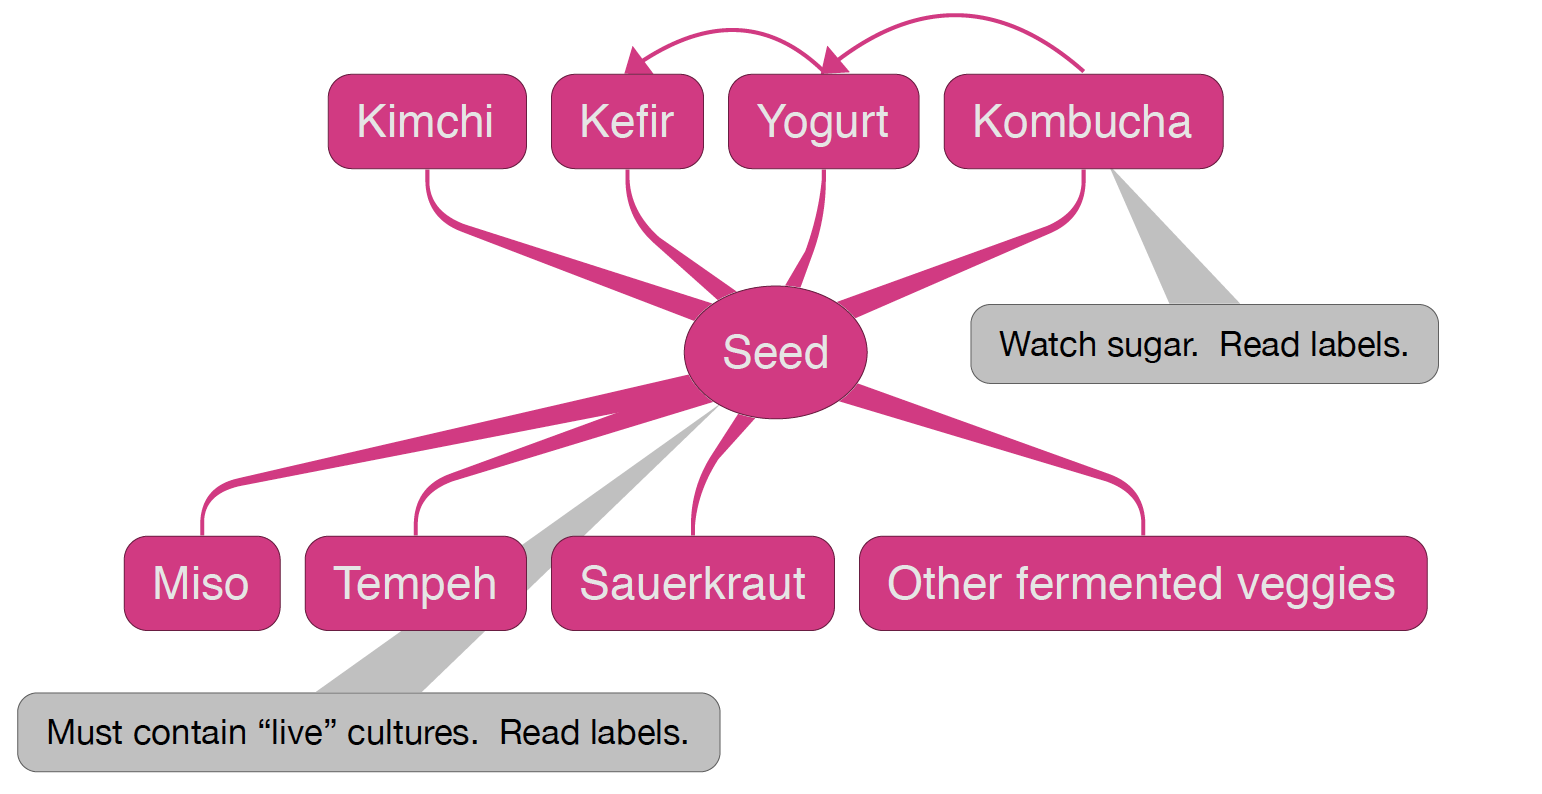 Graph showing fermented foods